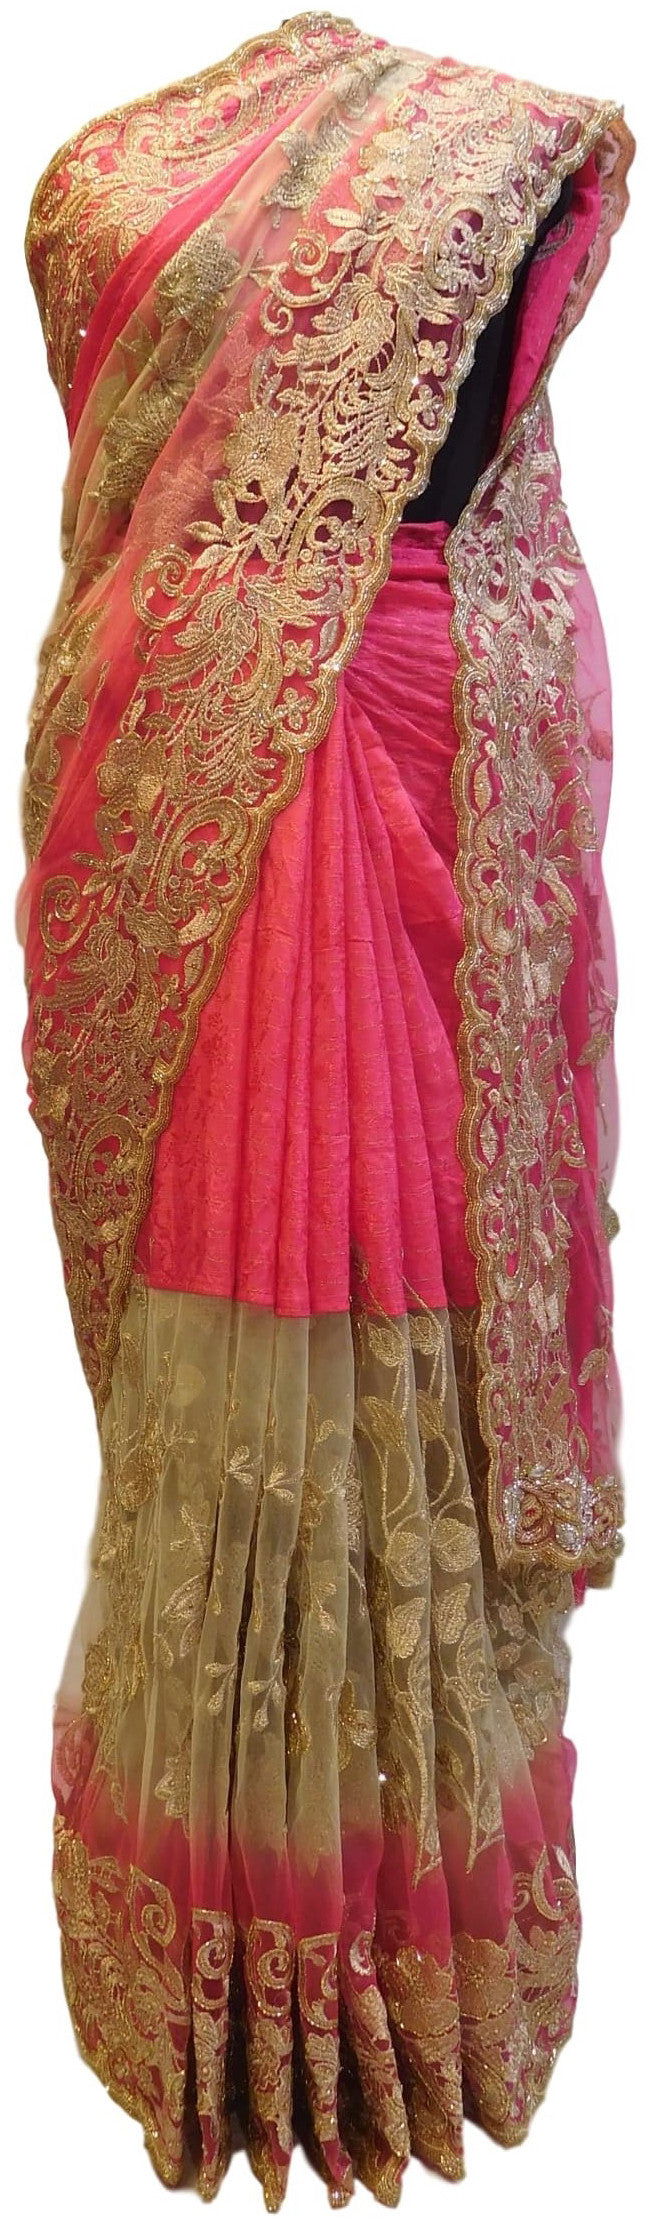 Pink Designer Net Sari Zari, Stone Cutdana Thread Embroidery Work Saree